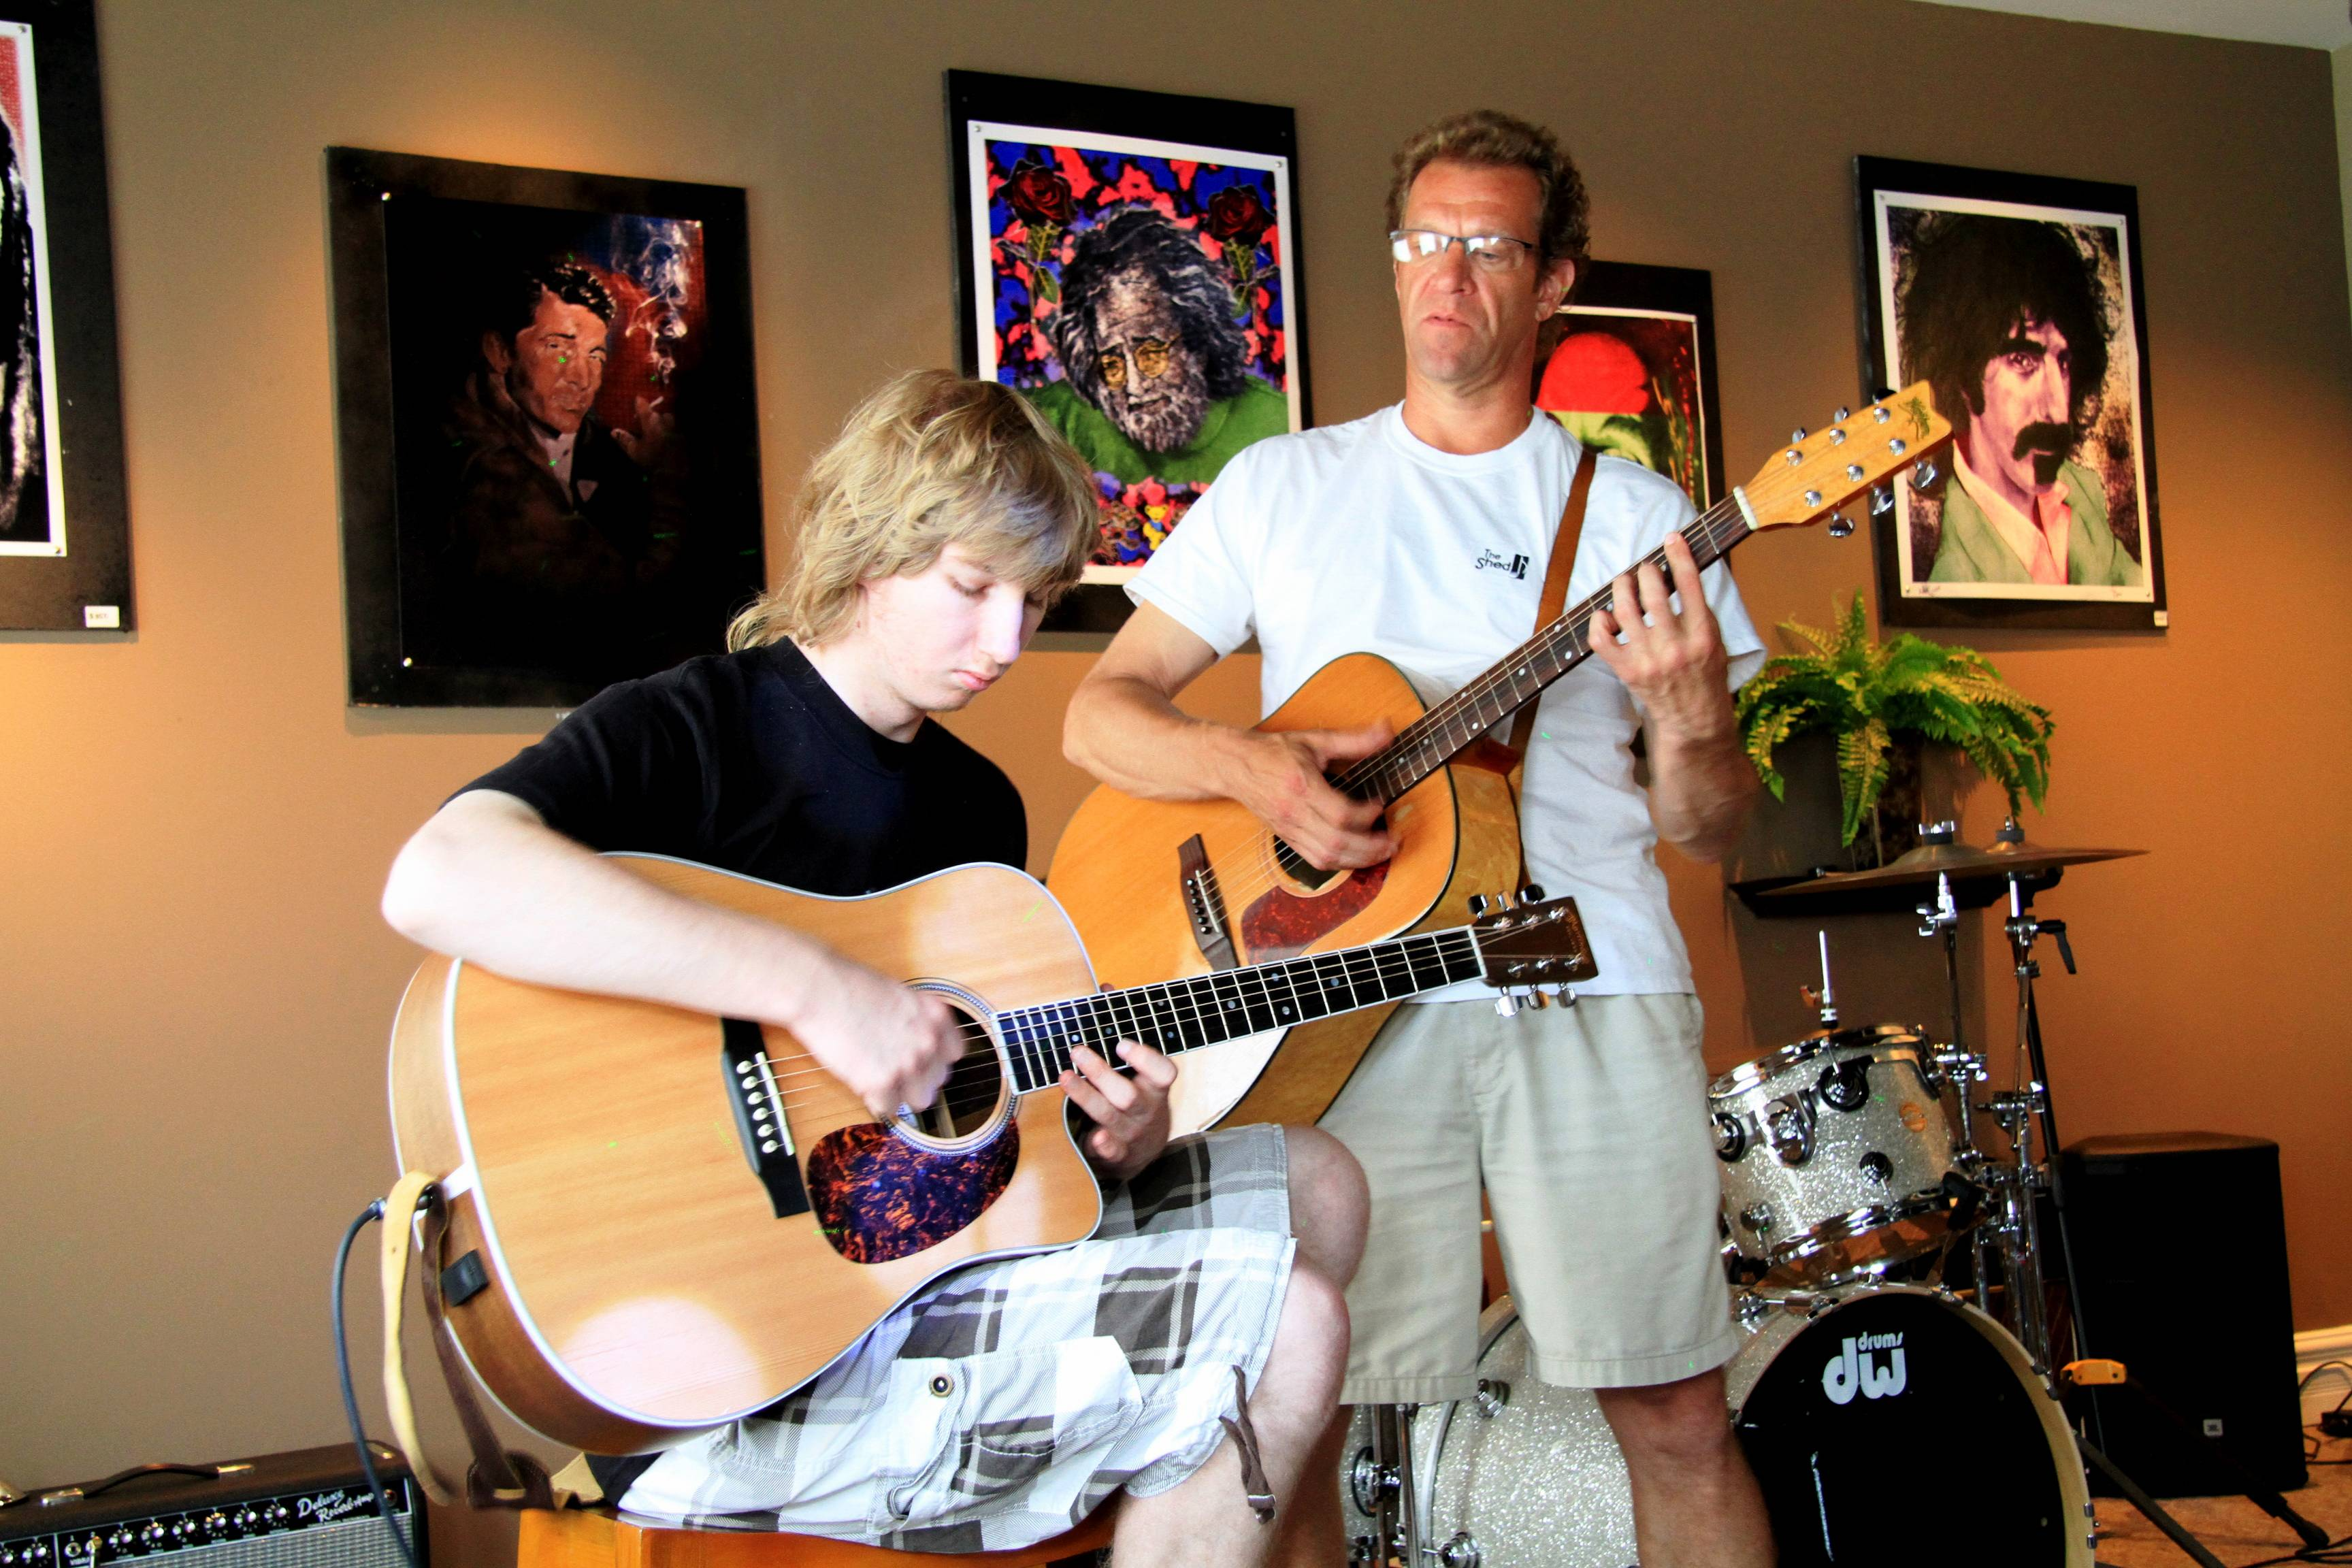 Nikolay Stepin, 18, of Buffalo Grove practices under the watchful eye of instructor Brad Nye during Rock N Roll Summer Camp at The Shed in Highland Park. Registration for Session 2 running July 9-20 is now being accepted. Call (847) 780-4944.